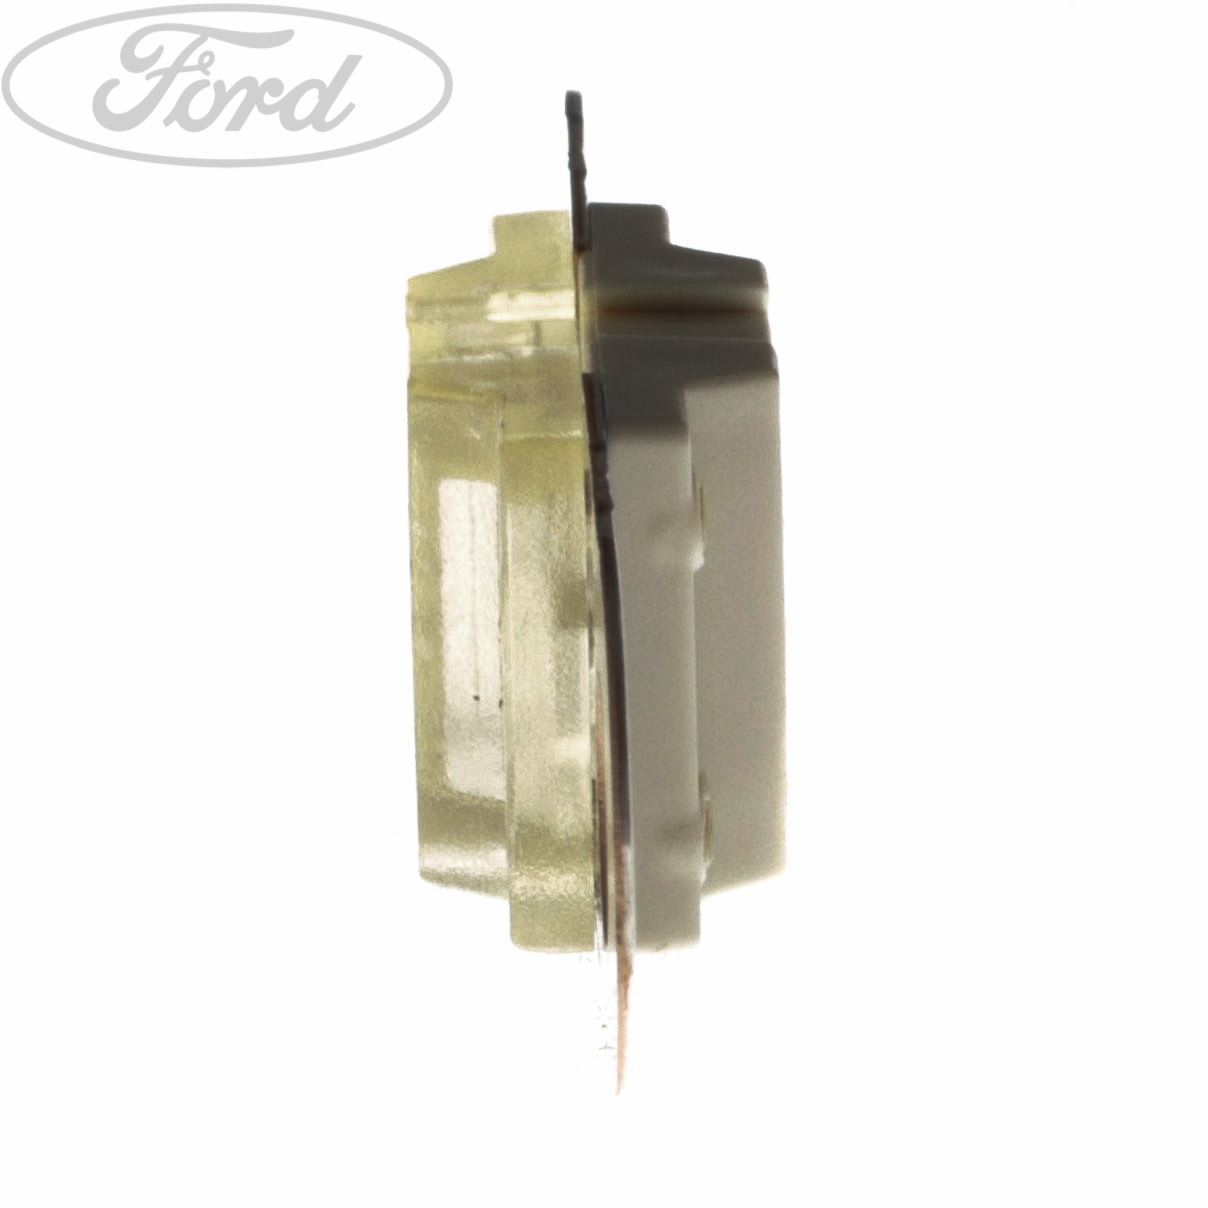 hight resolution of details about genuine ford circuit breaker 32 volt 80 amp mega fuse white 1148216